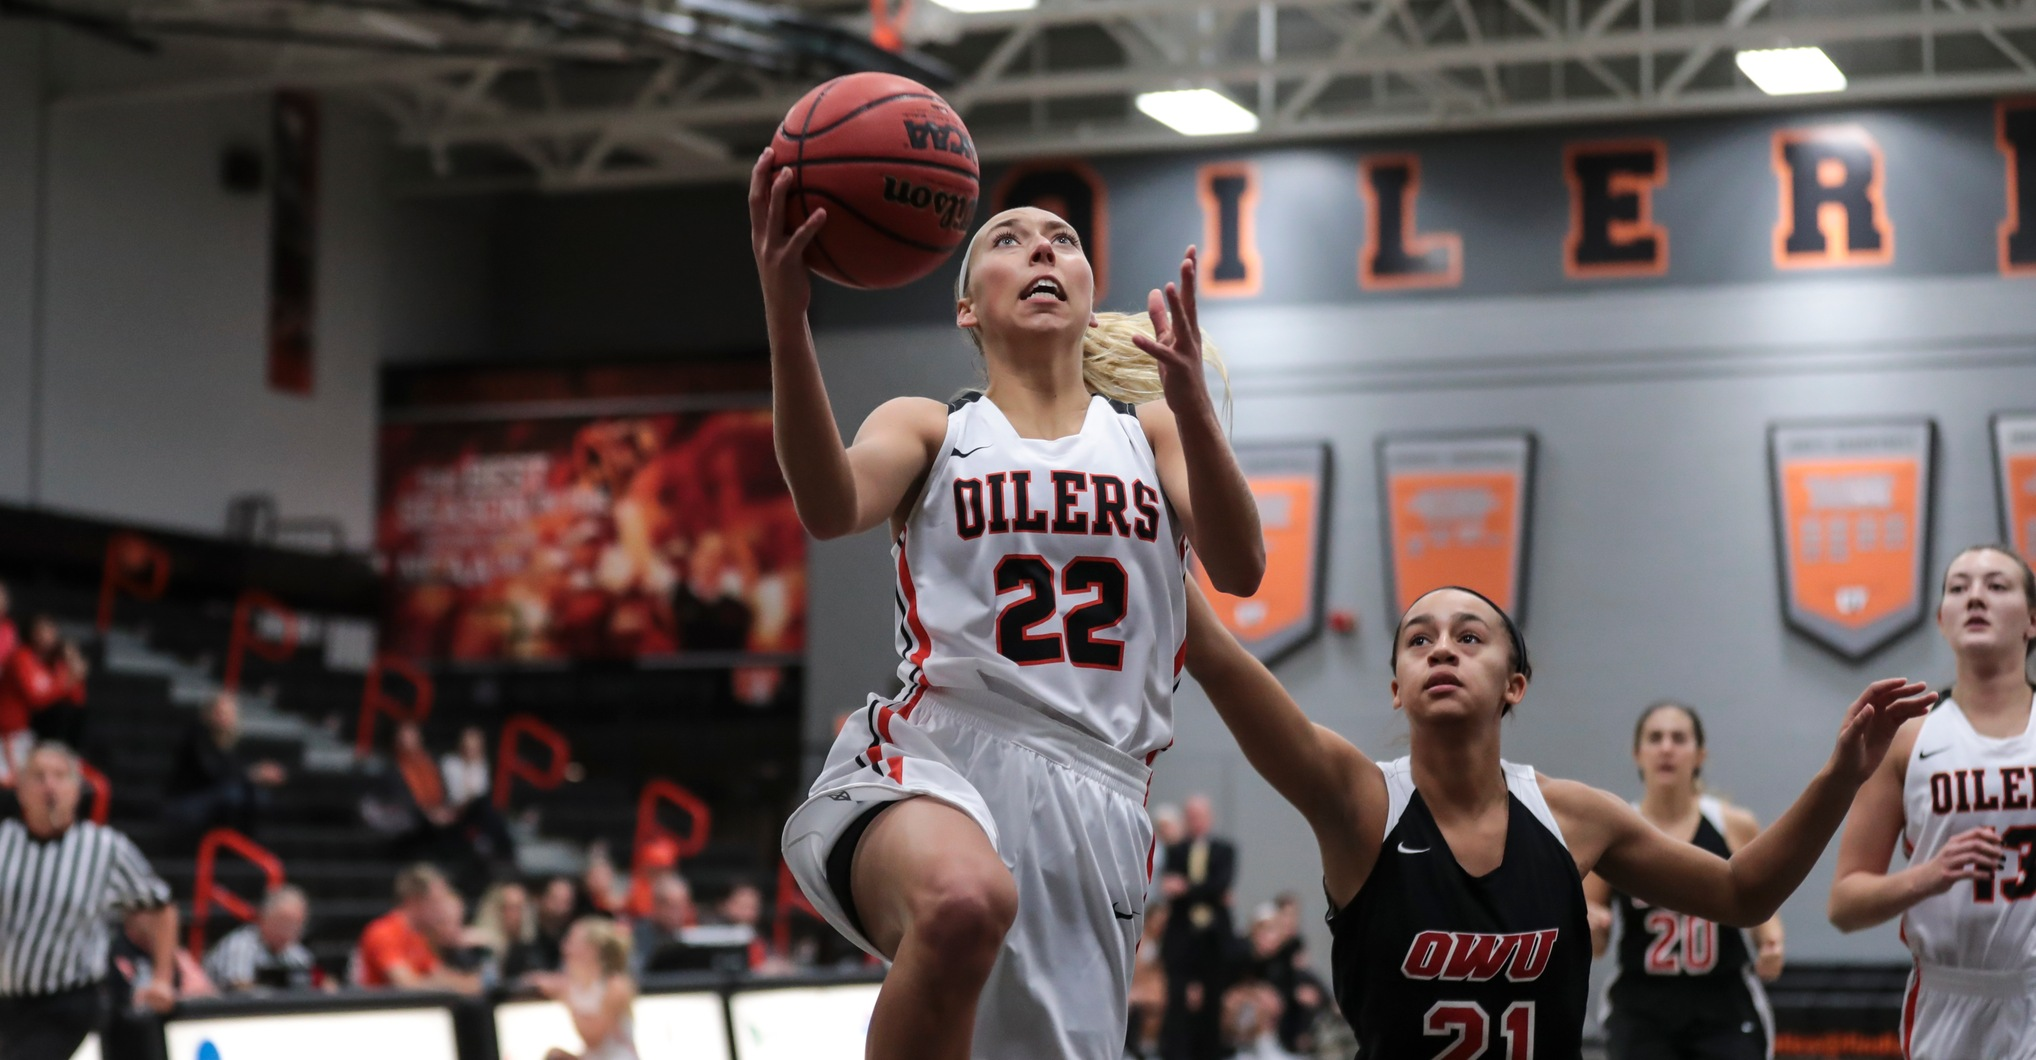 Oilers Open Season With 20-Point Win at Wayne State